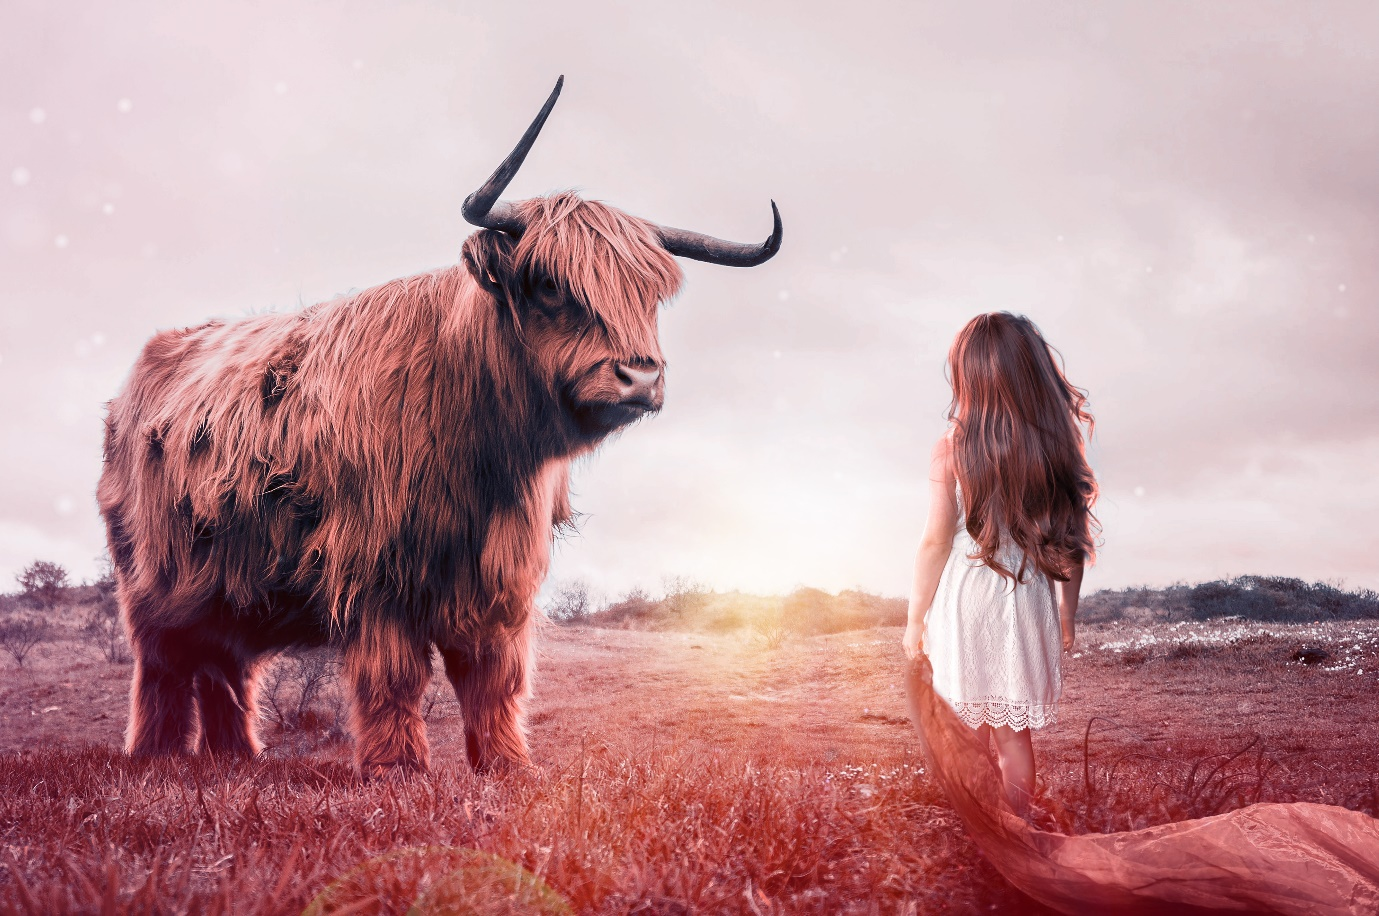 A person standing next to a yak Description automatically generated with low confidence